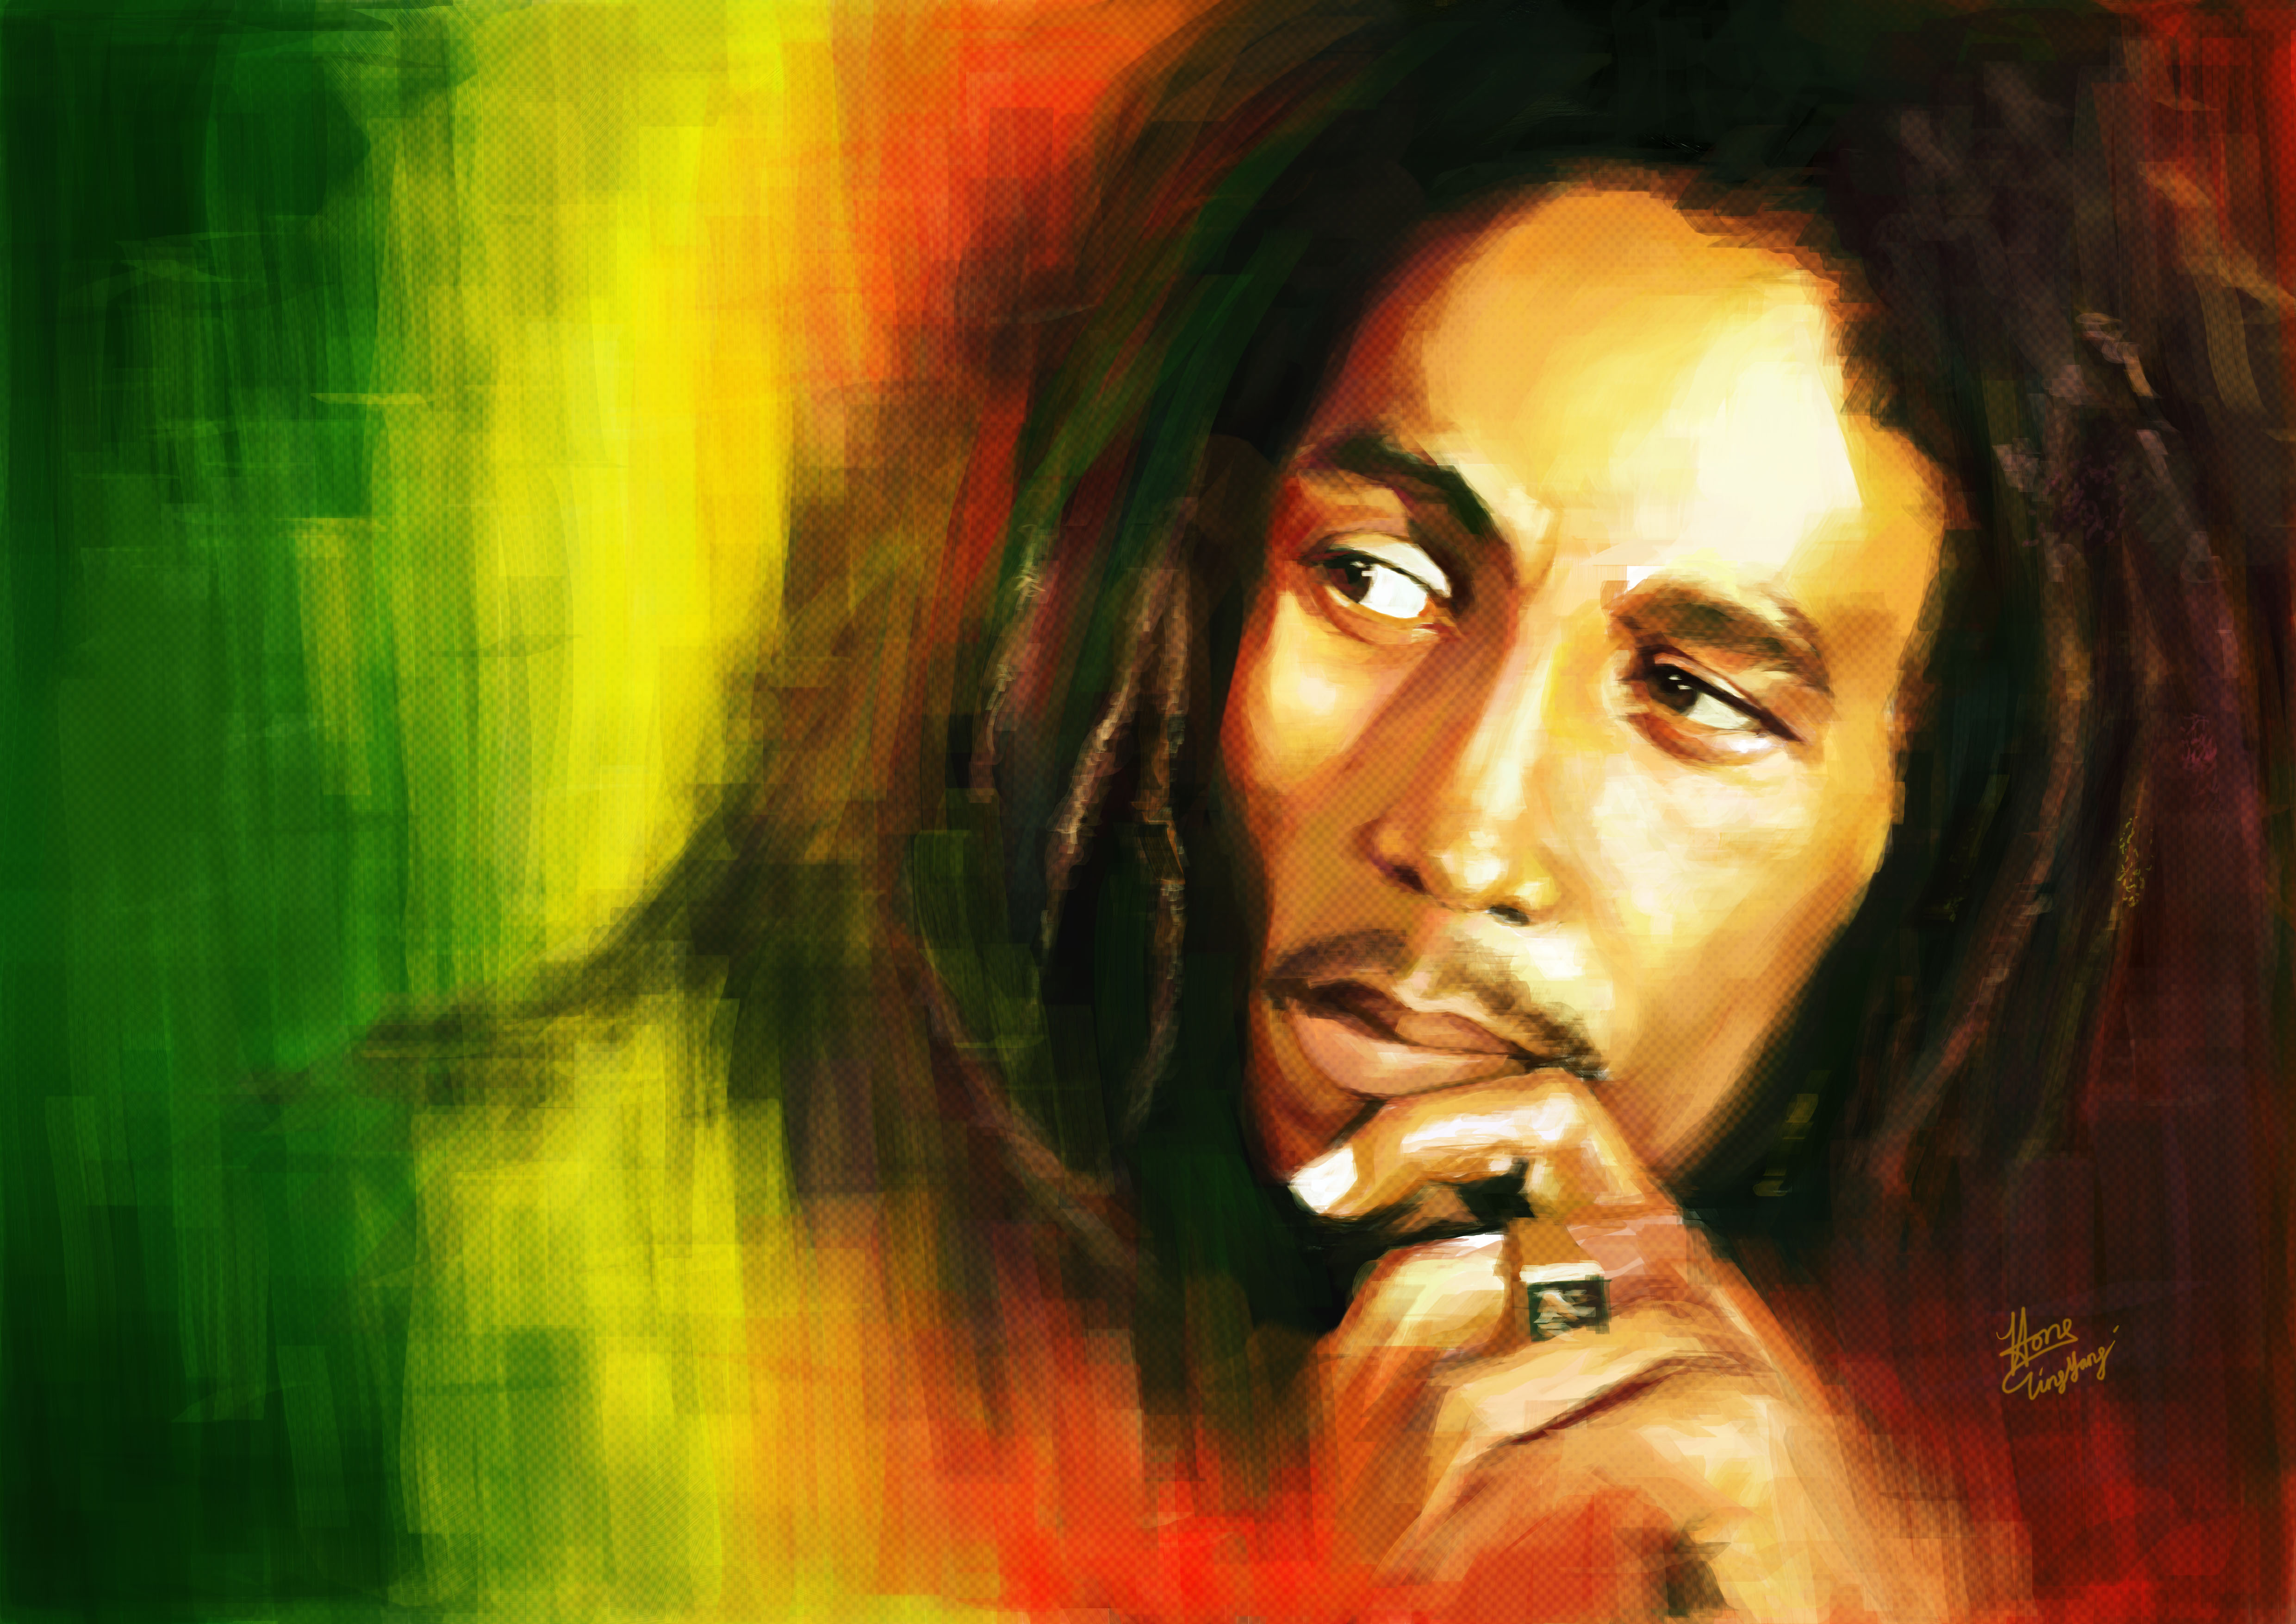 Dizzy has numerous tattoos over his body, so Bob Marley must be ...